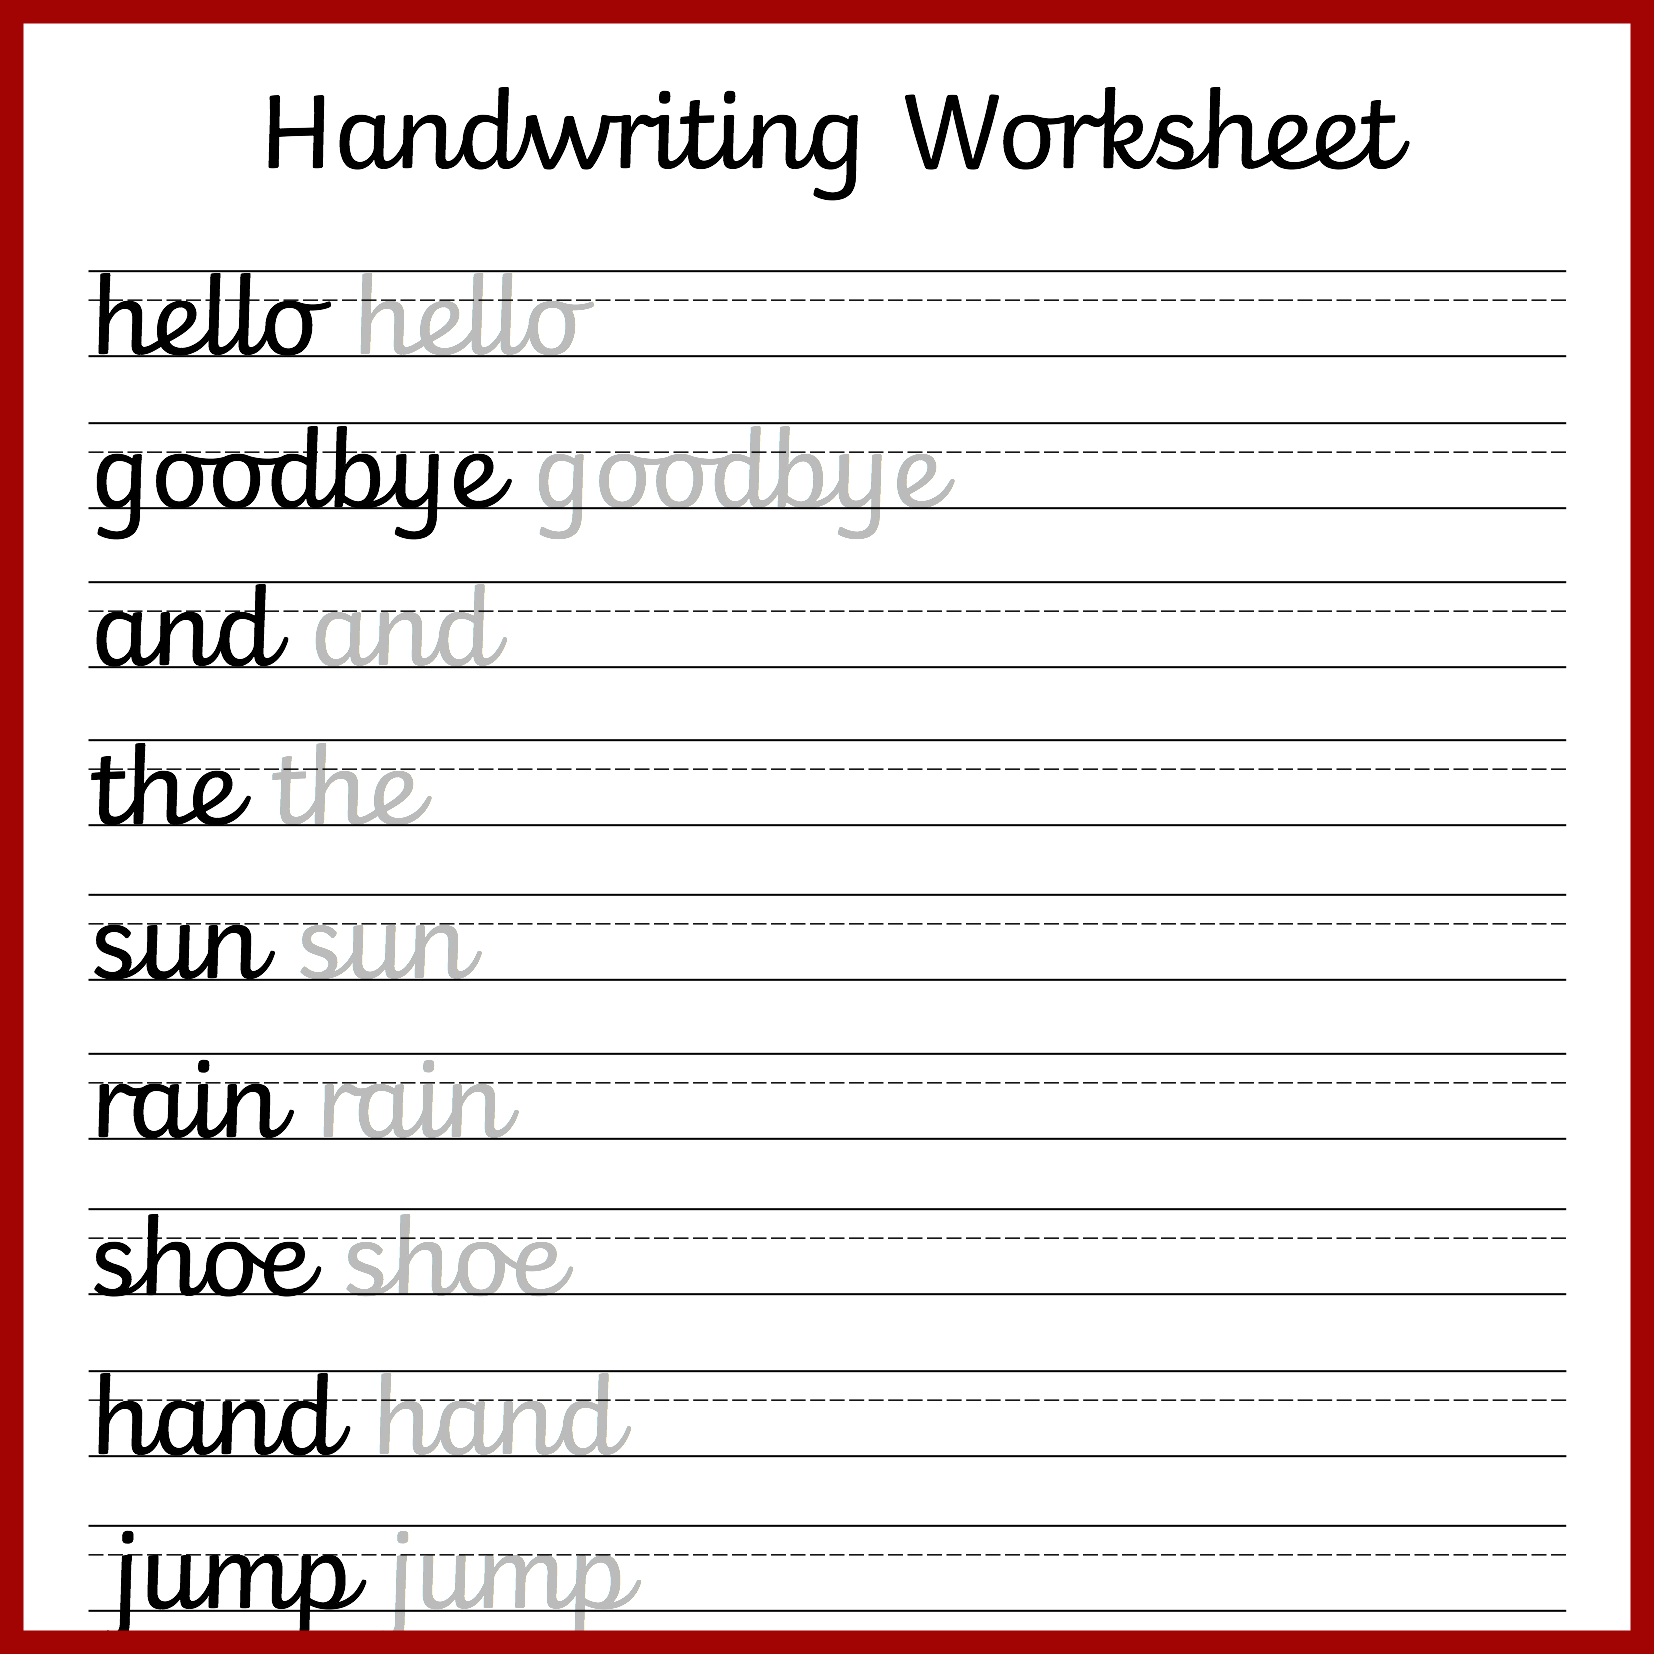 cursive handwriting worksheets free printable mama geek. Black Bedroom Furniture Sets. Home Design Ideas